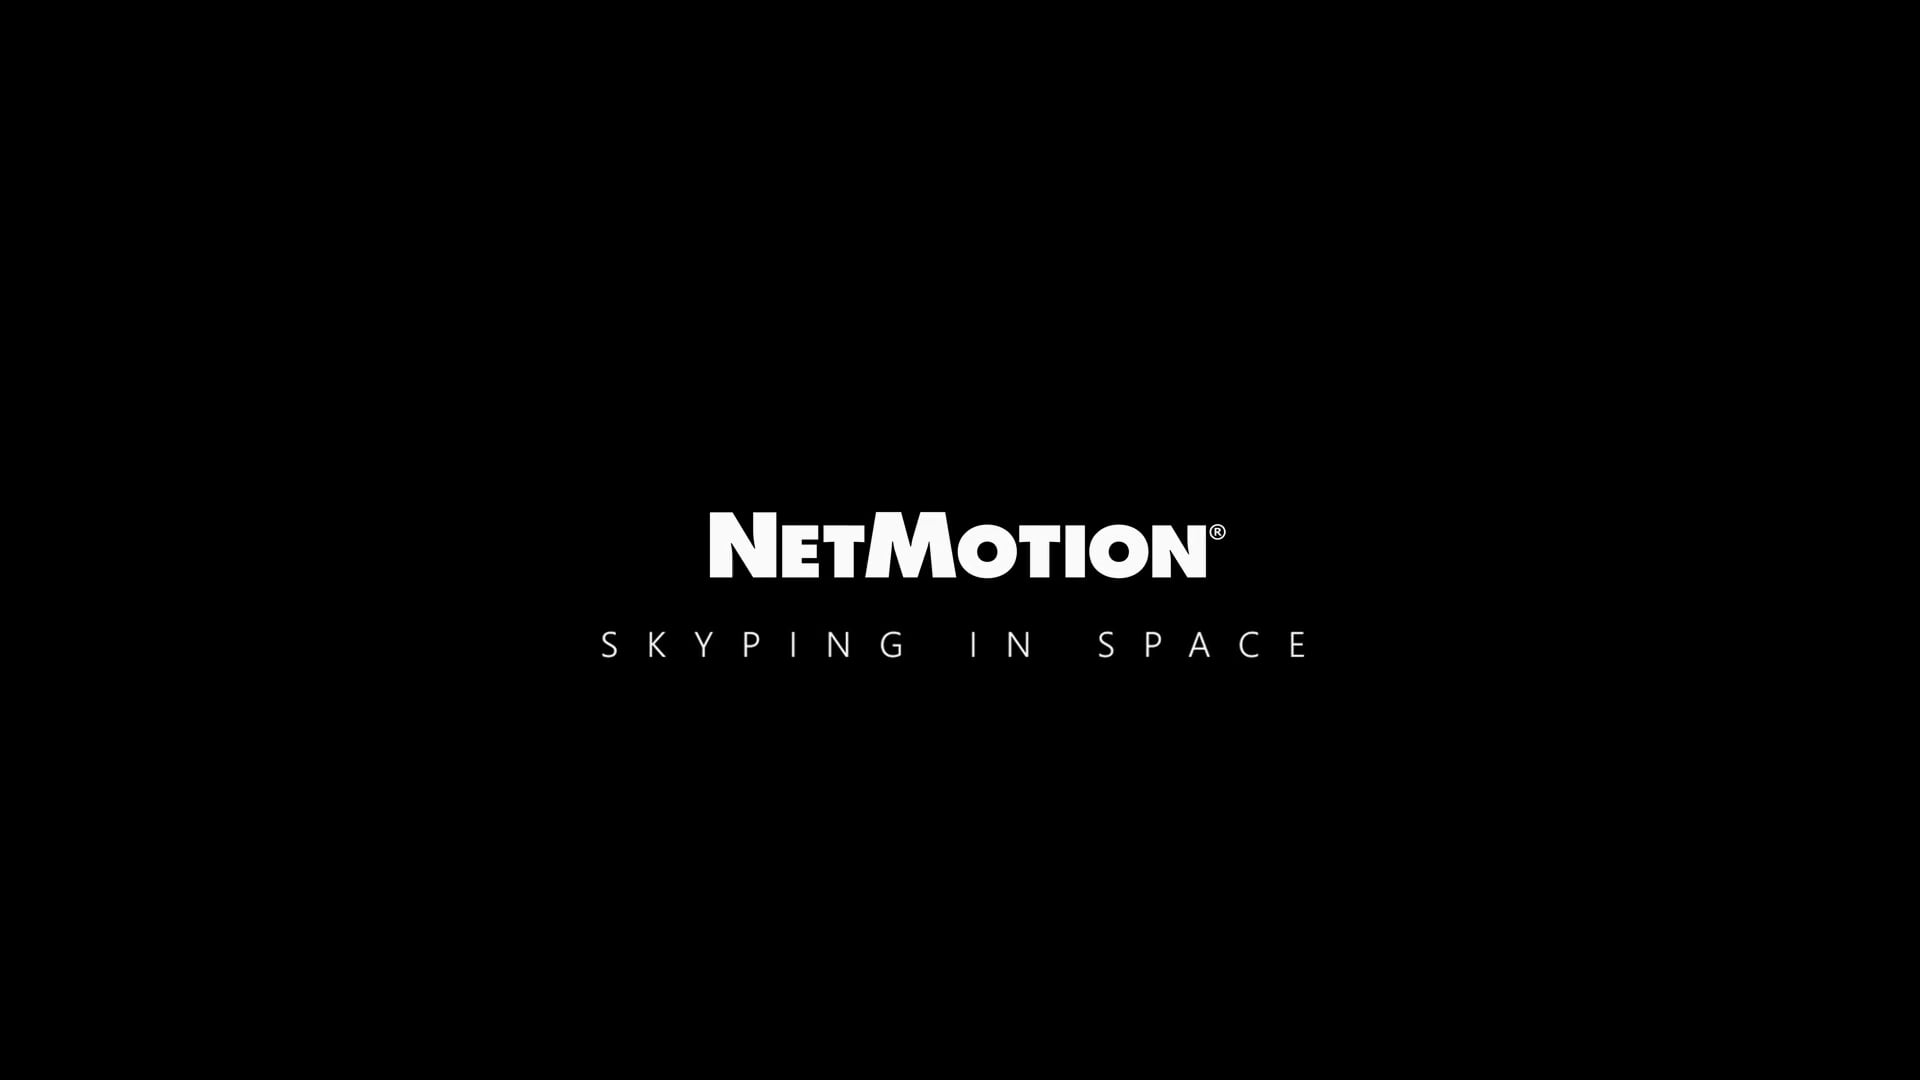 NetMotion Skyping in Space - Corporate